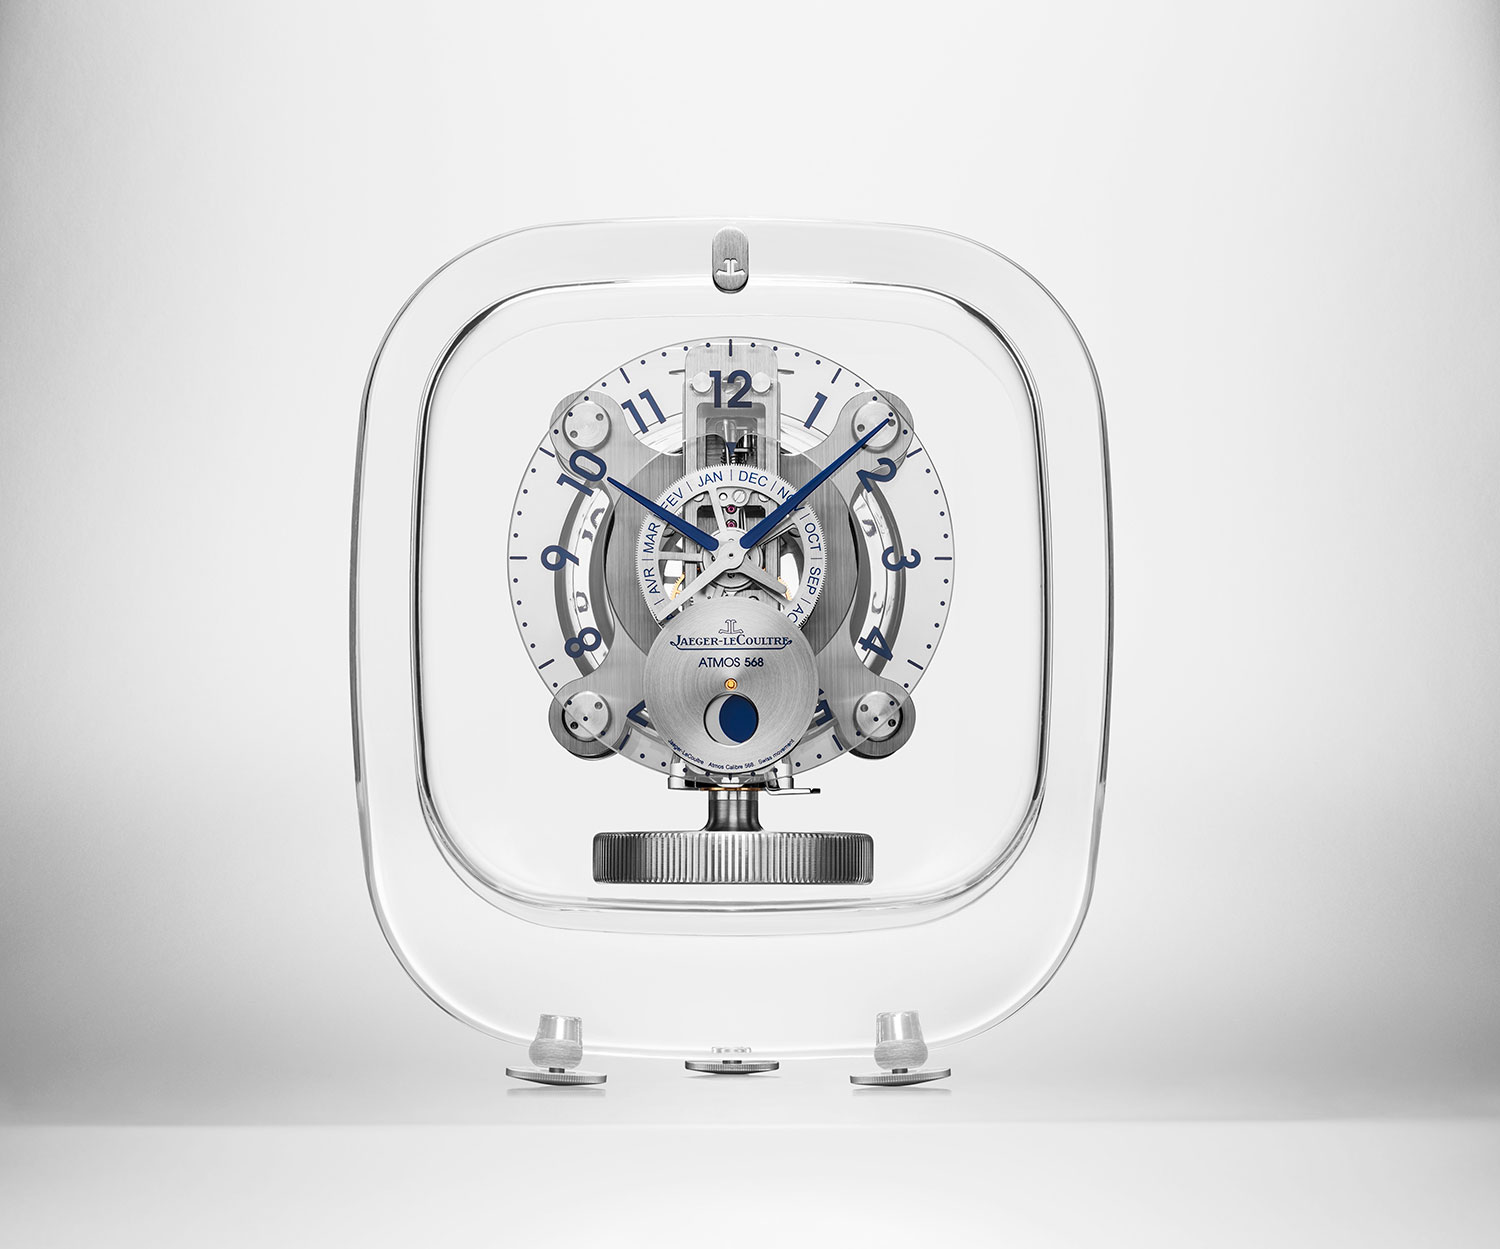 frontal del Atmos 568 by Marc Newson